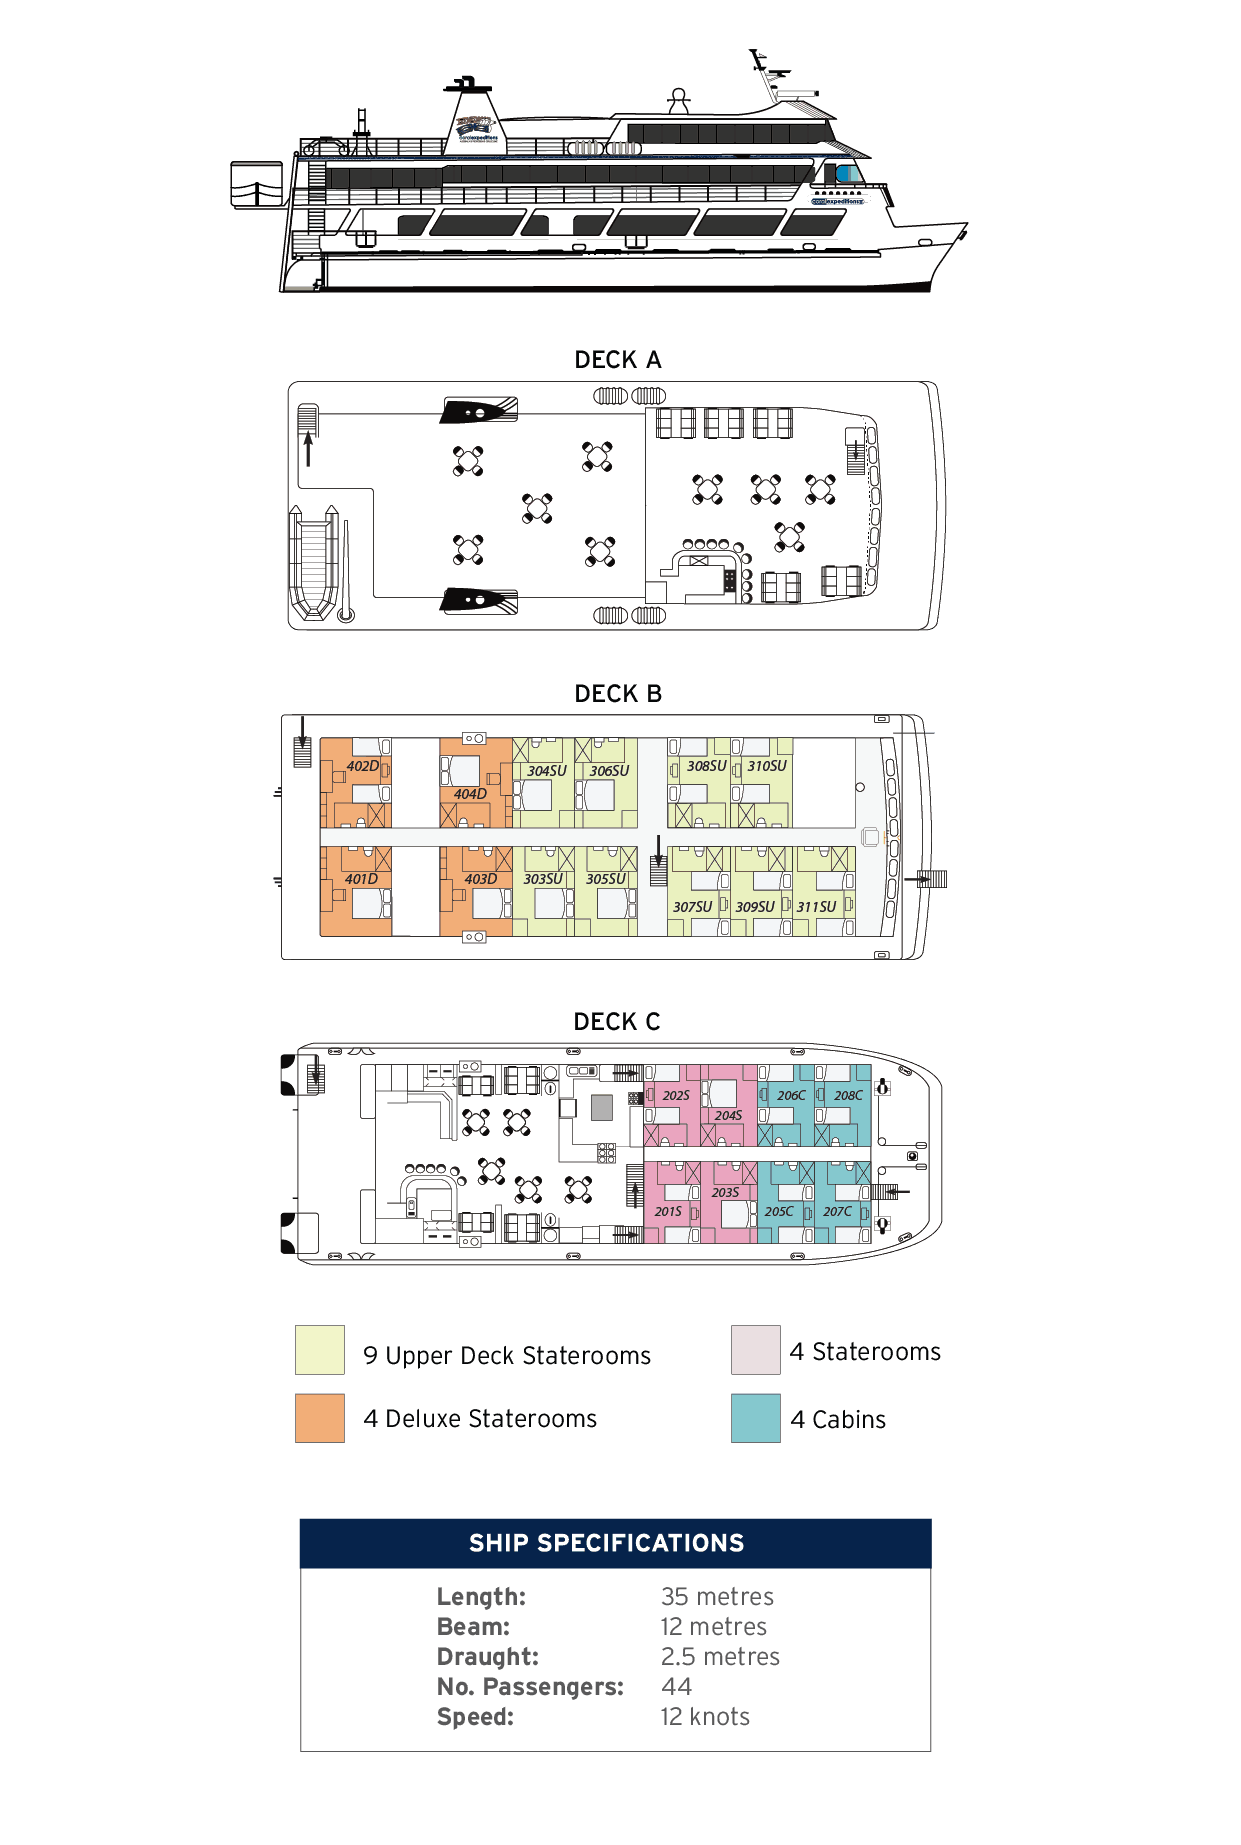 Deck plan of Coral Expeditions II showing Deck A, B, and C with ship specifications